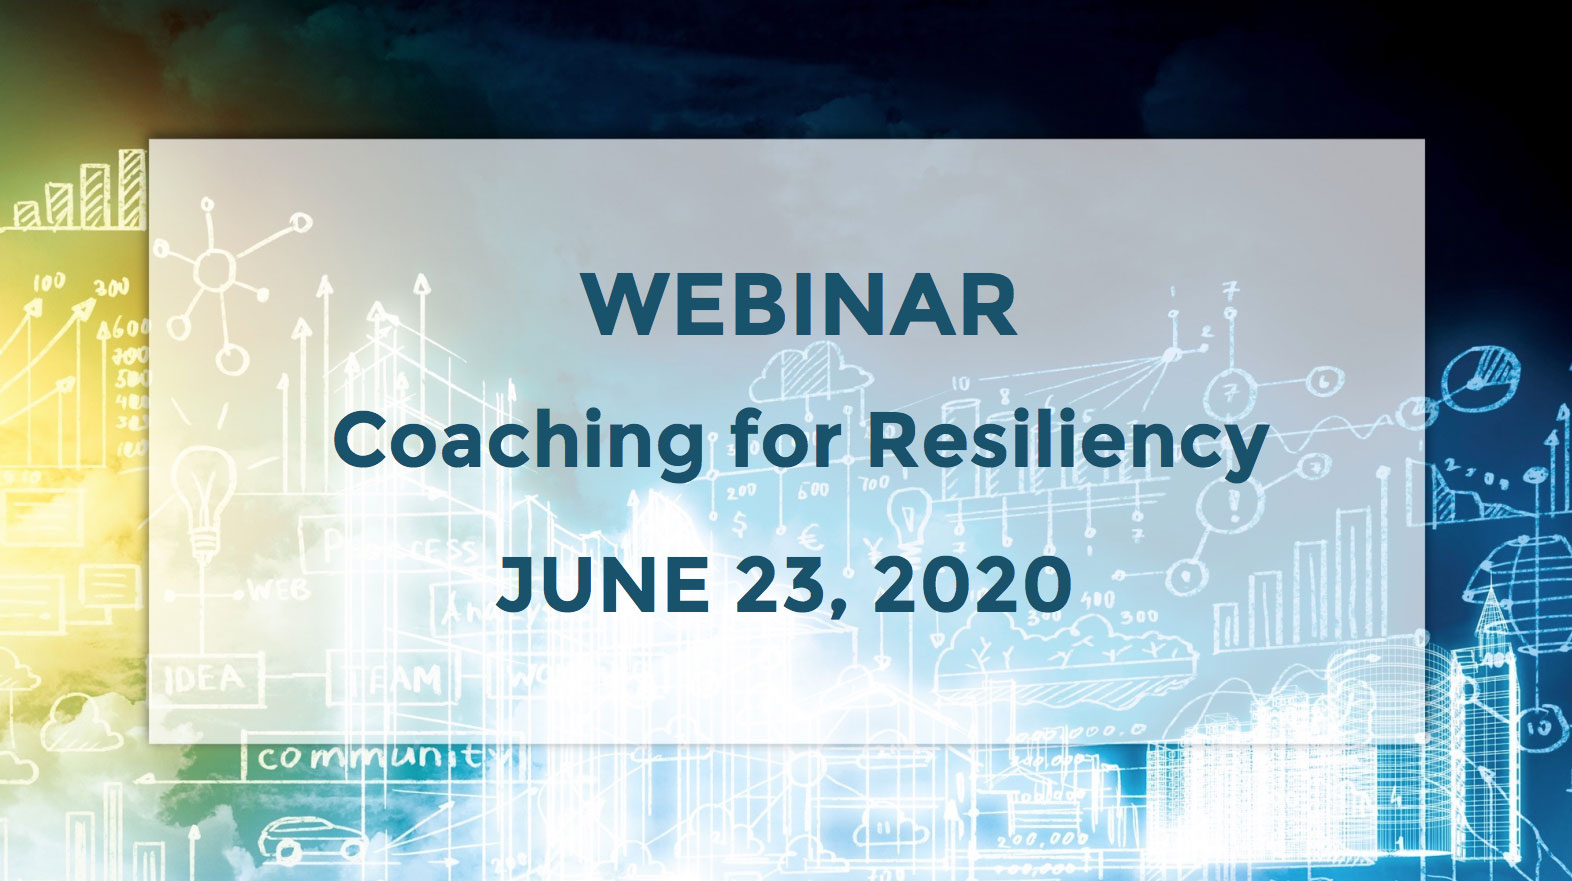 June 23rd – Coaching for Resiliency webinar